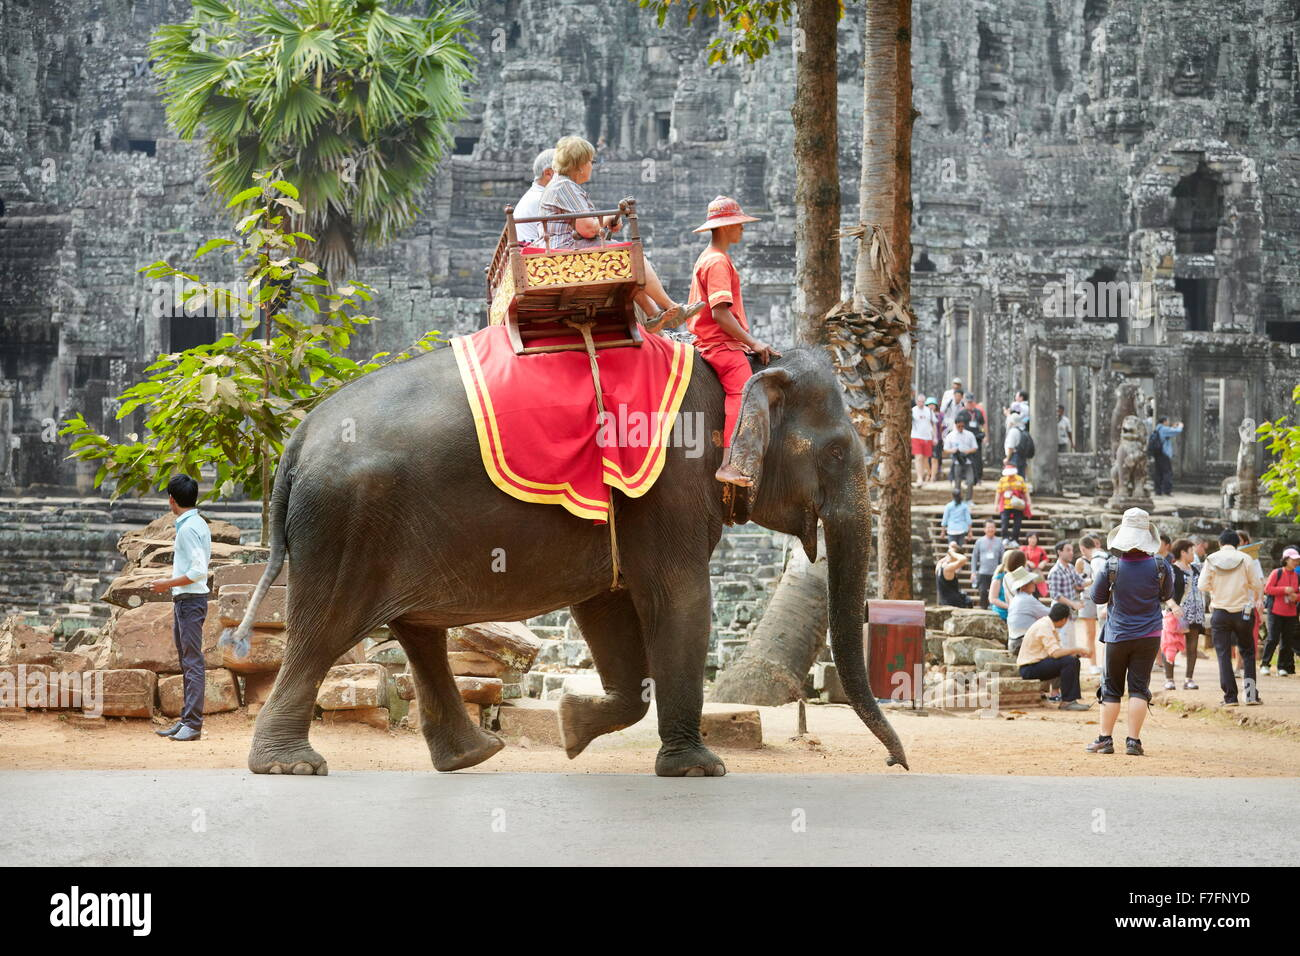 Tourists on elephant ride, Bayon Temple, Angkor Thom, Cambodia, Asia - Stock Image